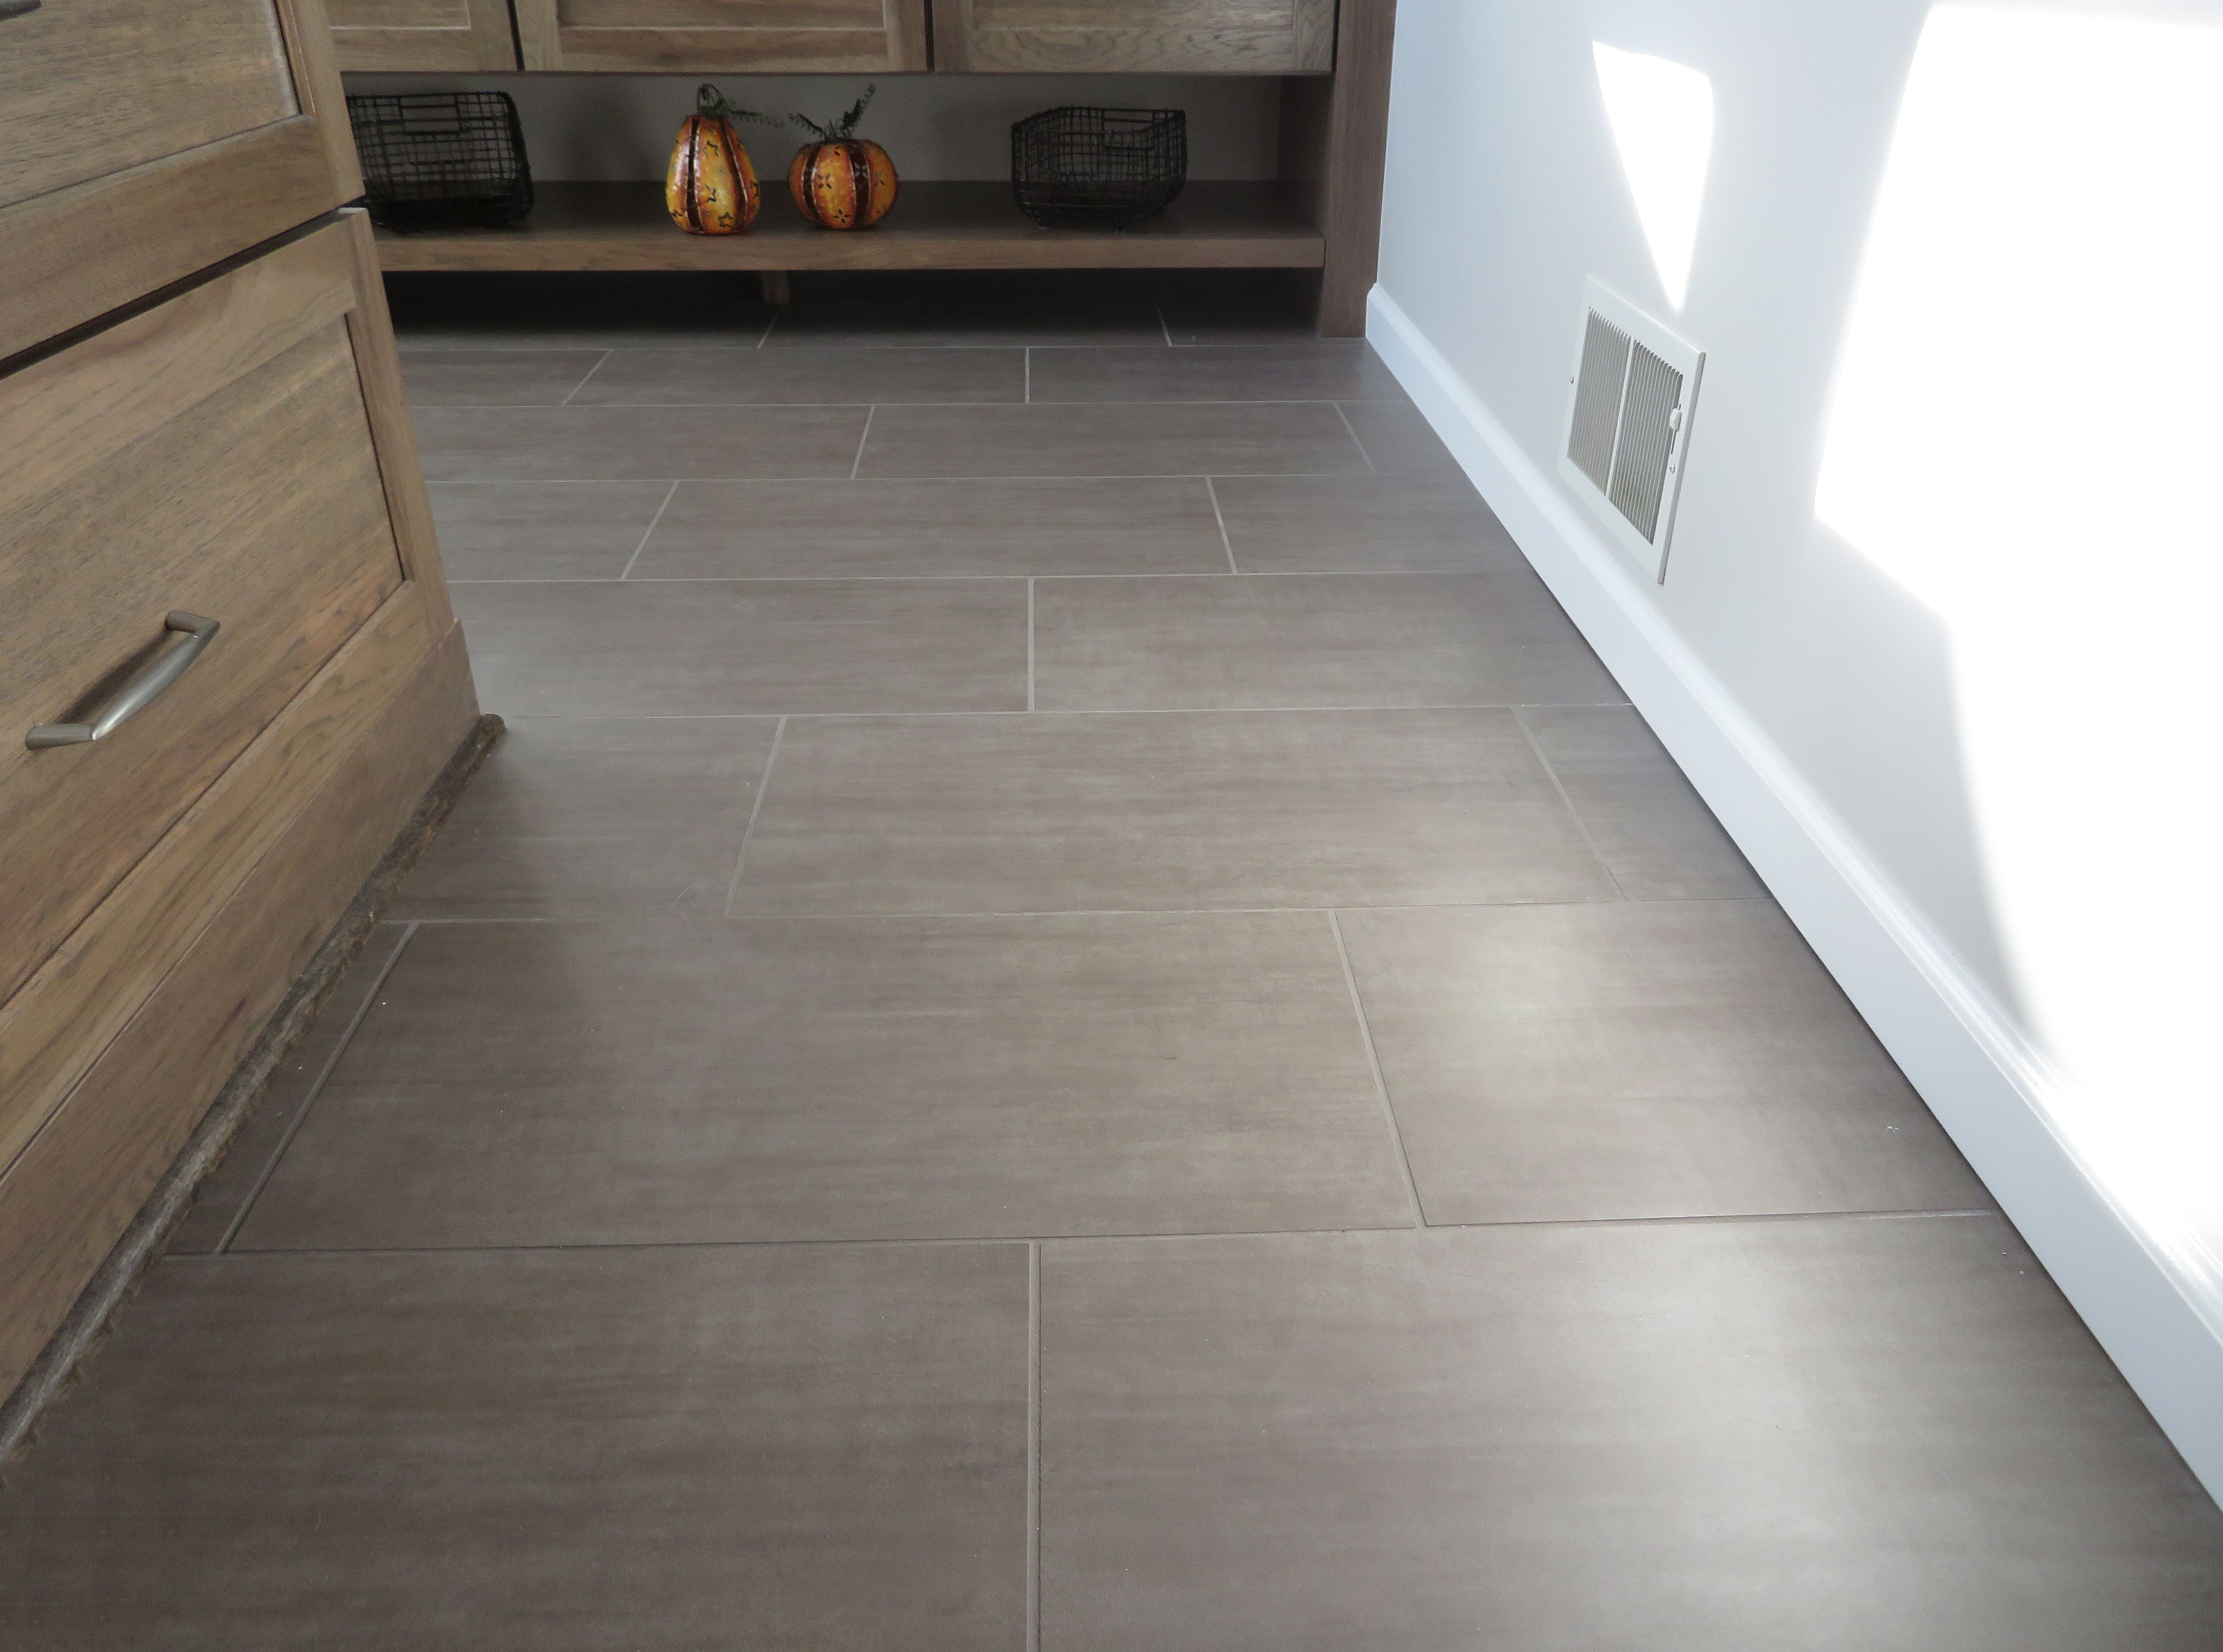 How To Get A Straight Line For Floor Tiles